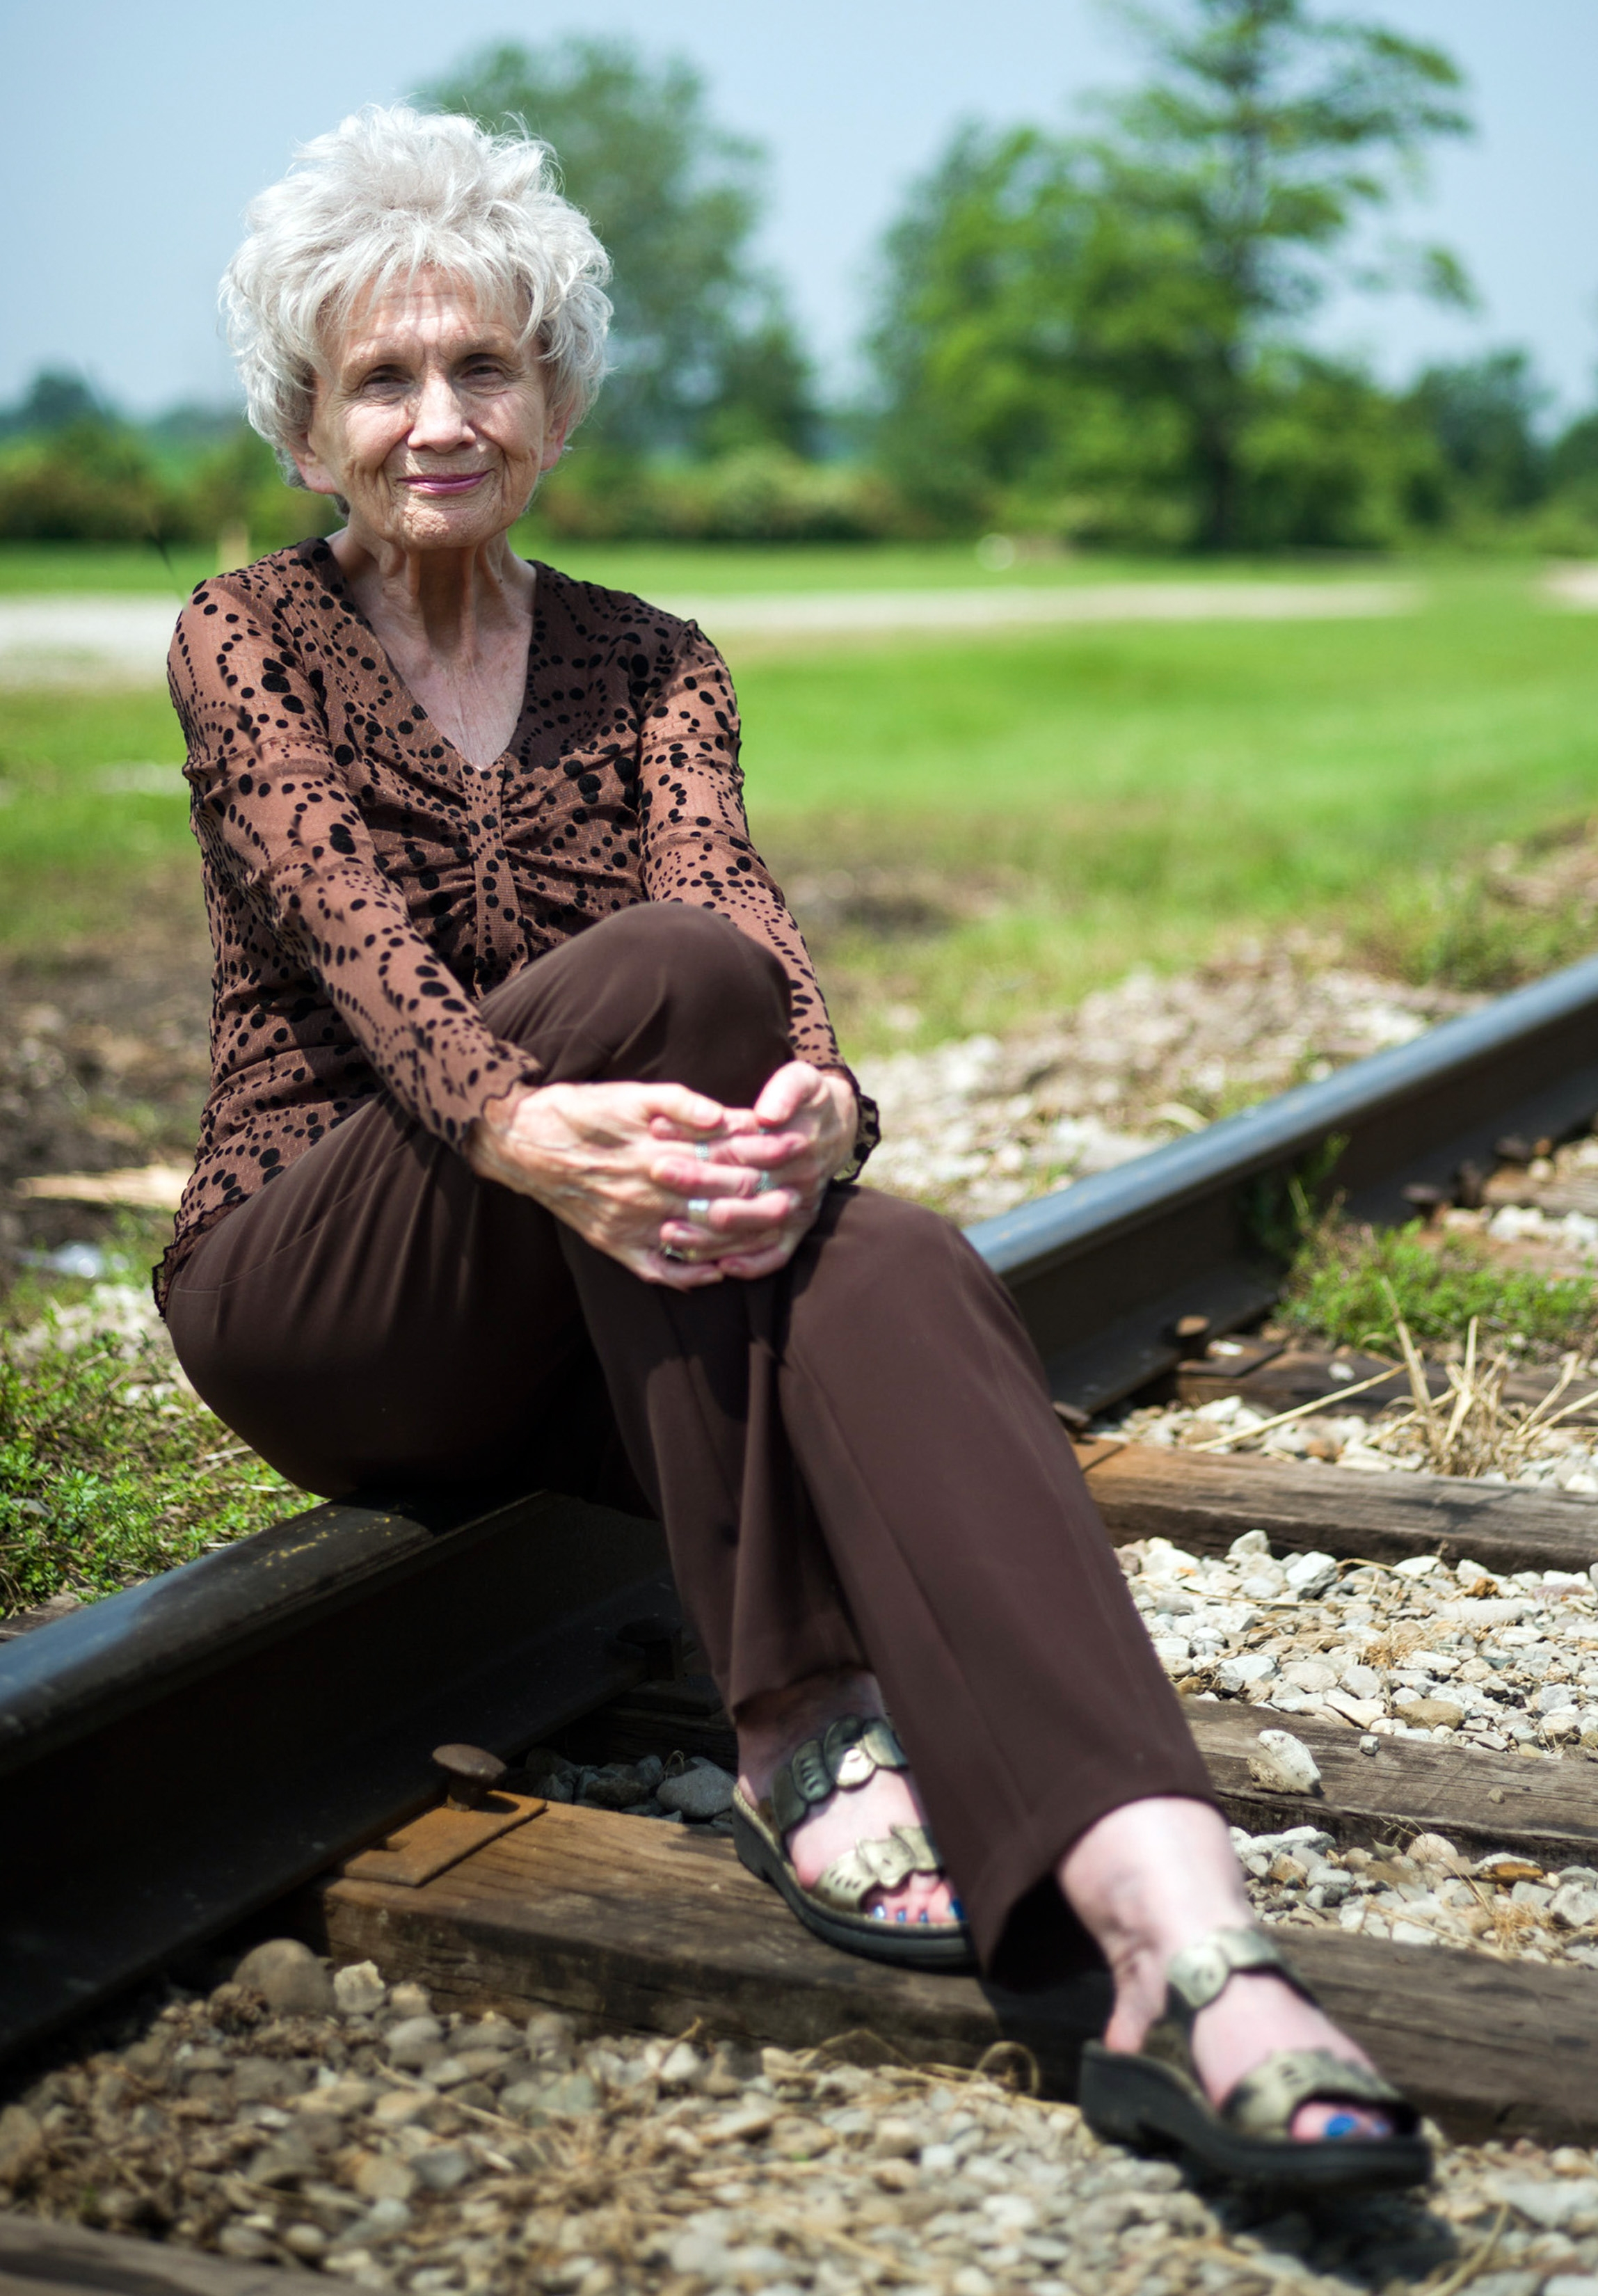 """""""When I began writing, there was a very small community of Canadian writers and little attention was paid by the world,"""" said Nobel Literature prize winner Alice Munro. """"Now Canadian writers are read, admired and respected around the globe."""""""